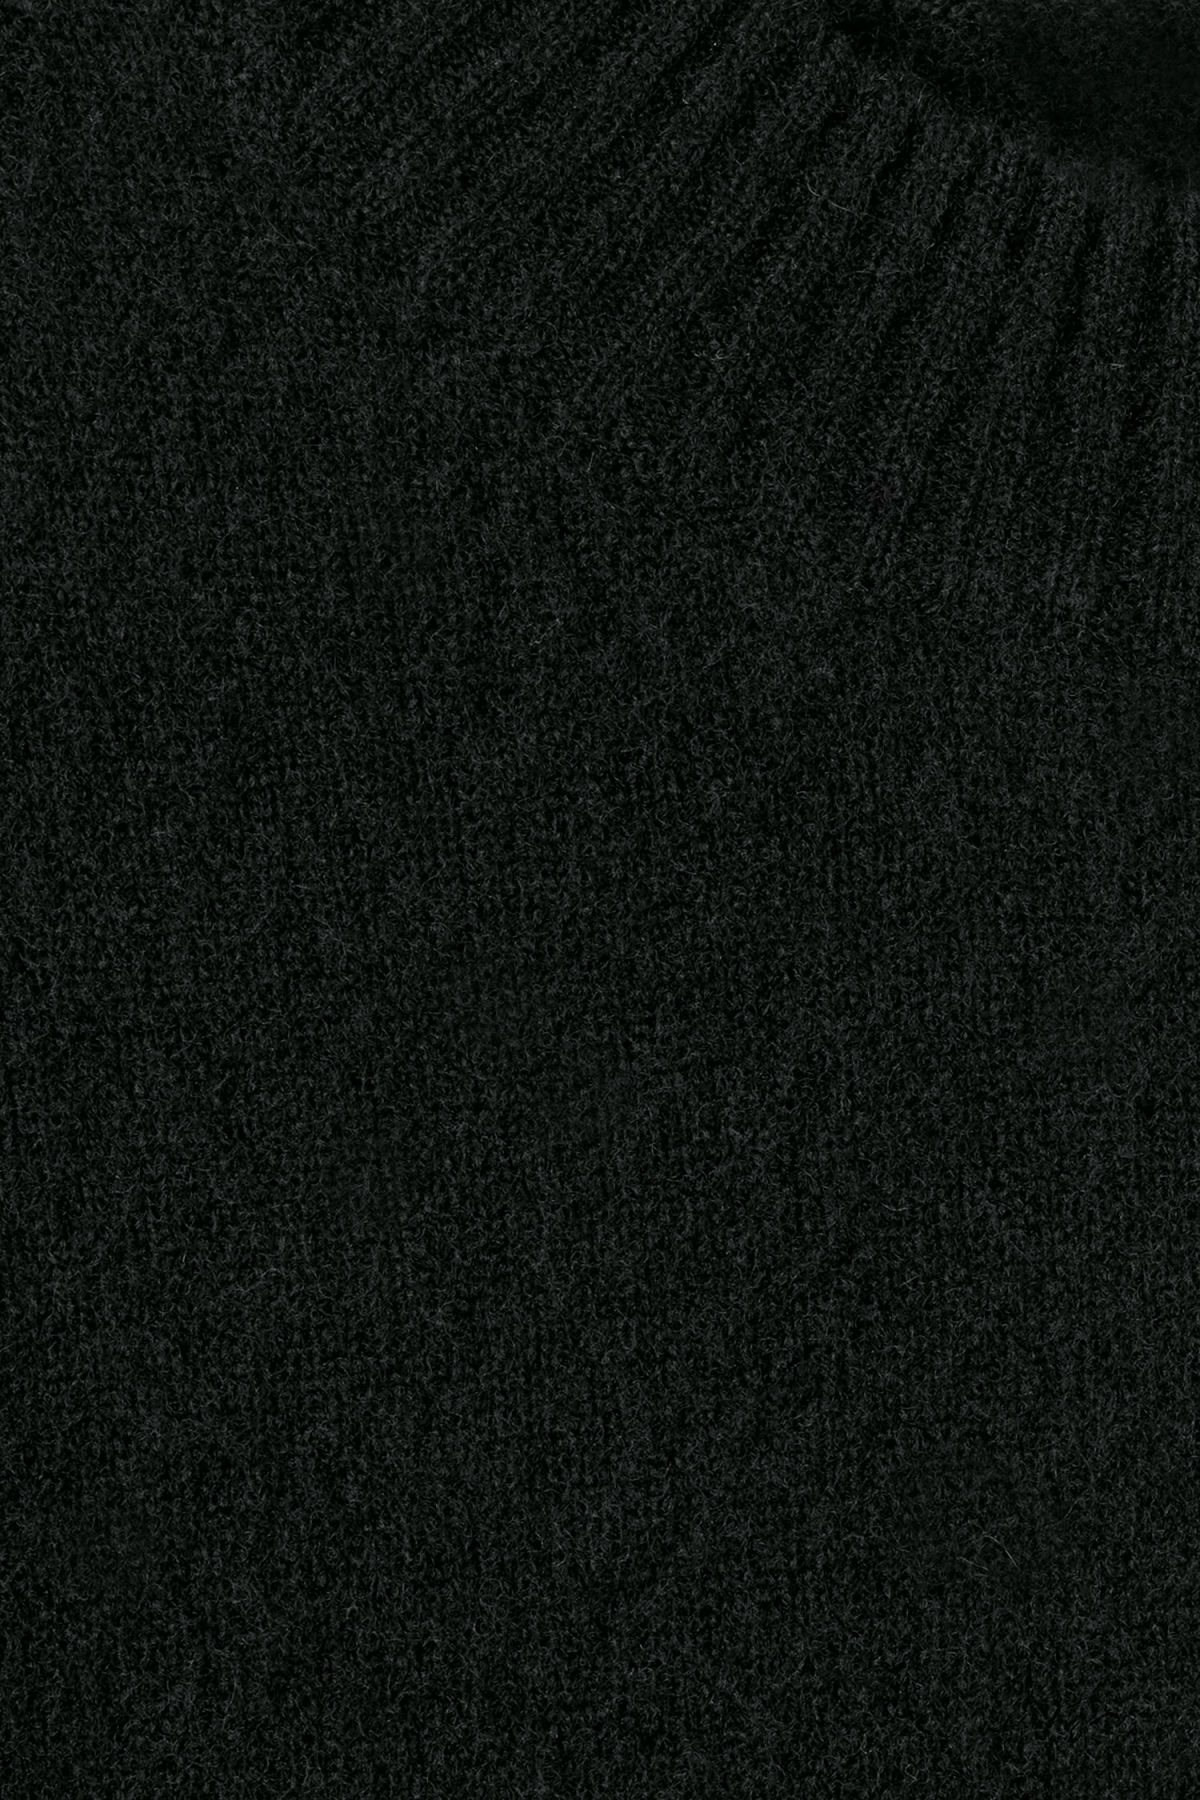 Detailed image of Weekday grint wool sweater in black